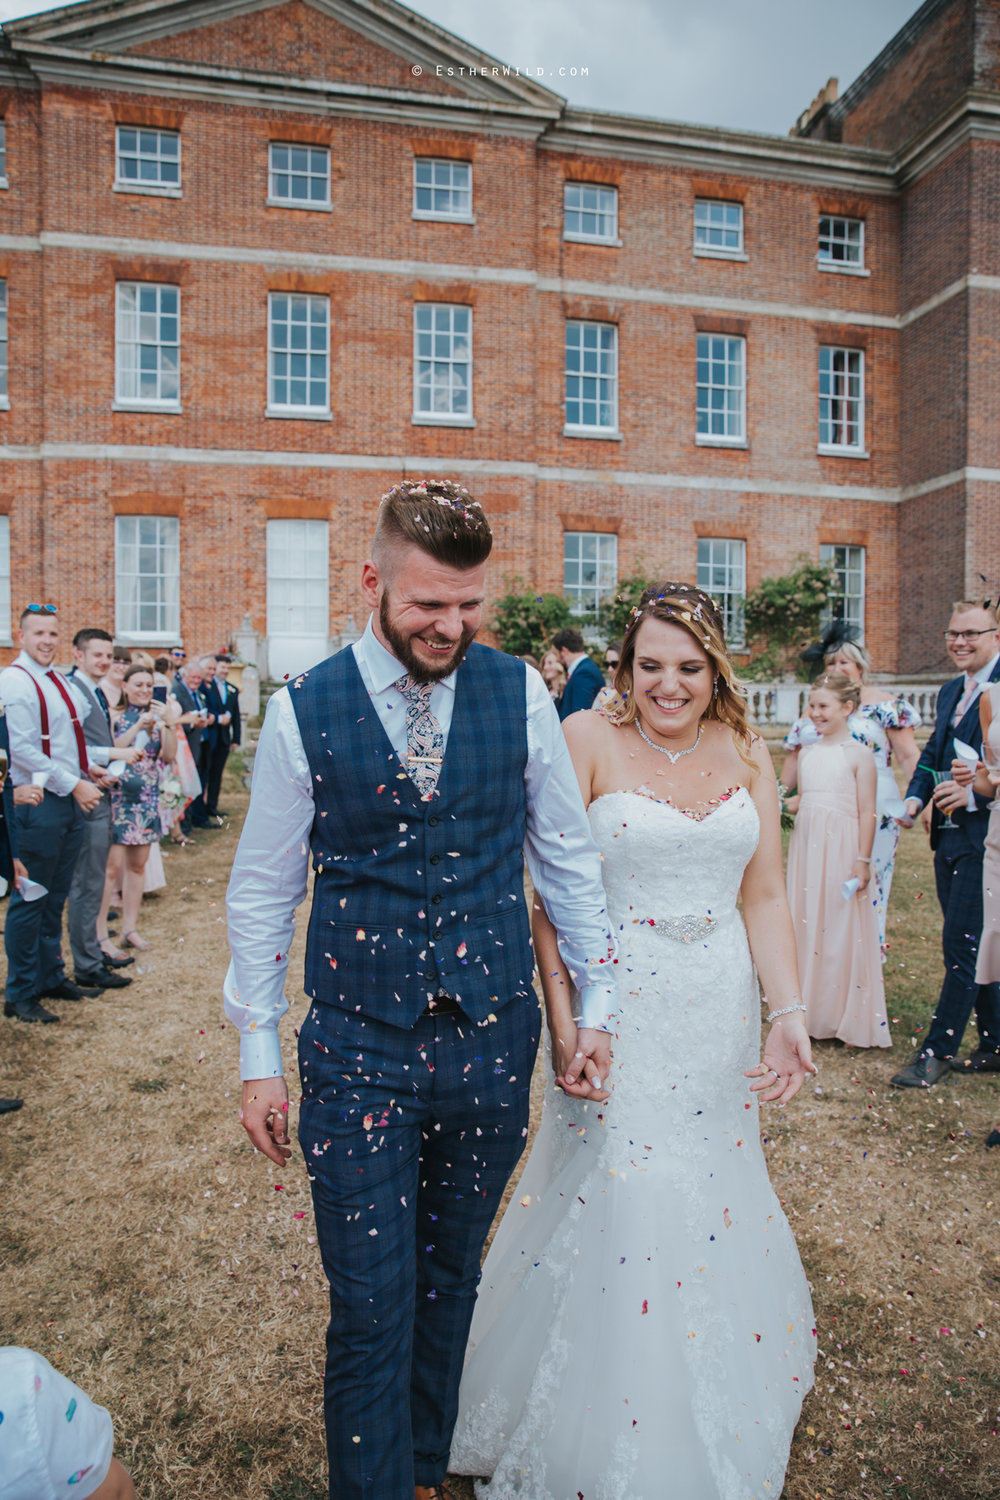 Kimberley_Hall_Wedding_Norfolk_Photography_Esther_Wild_IMG_1304.jpg